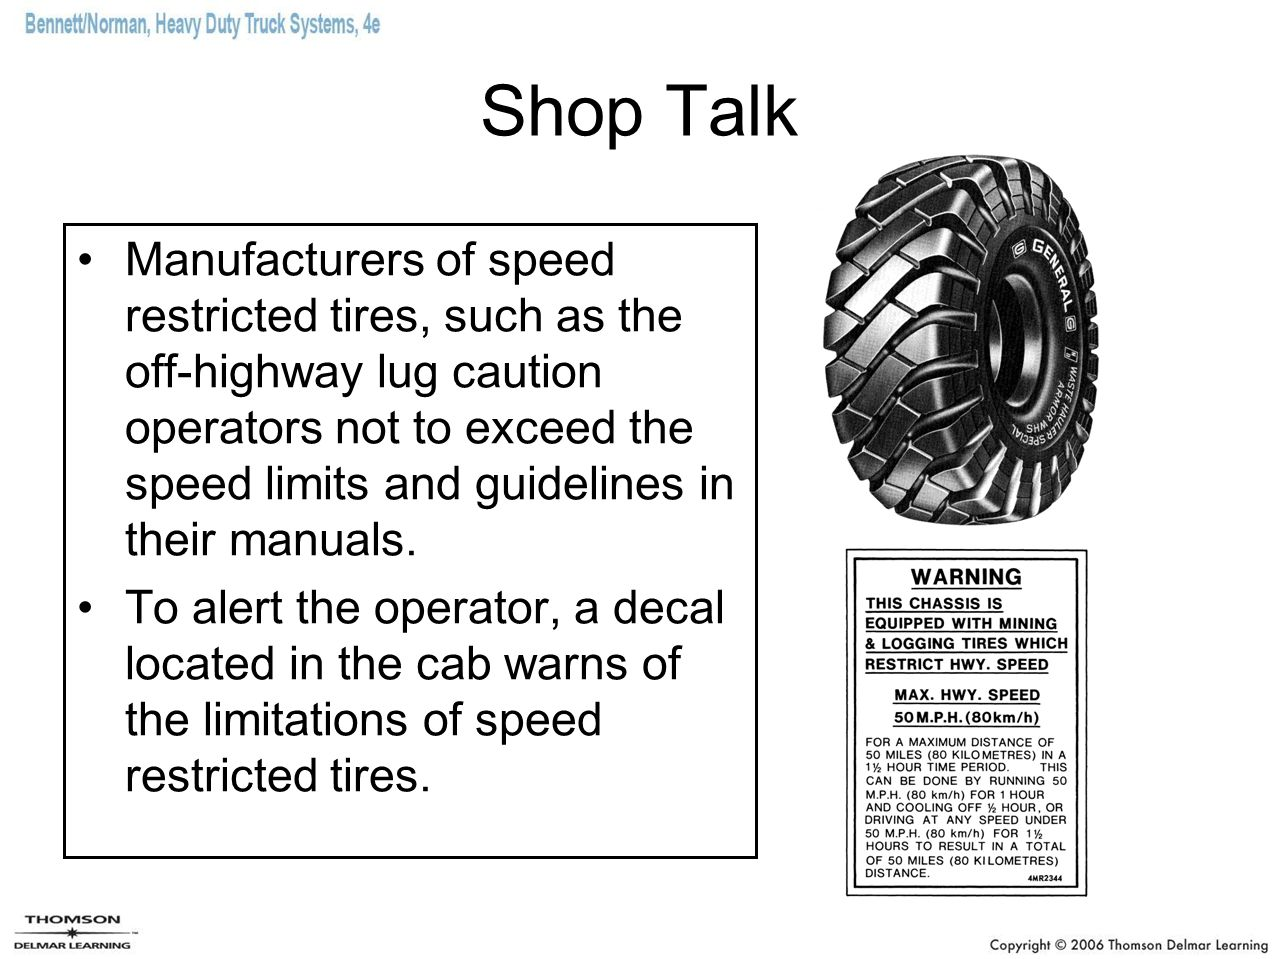 Shop Talk Manufacturers of speed restricted tires, such as the off-highway lug caution operators not to exceed the speed limits and guidelines in thei